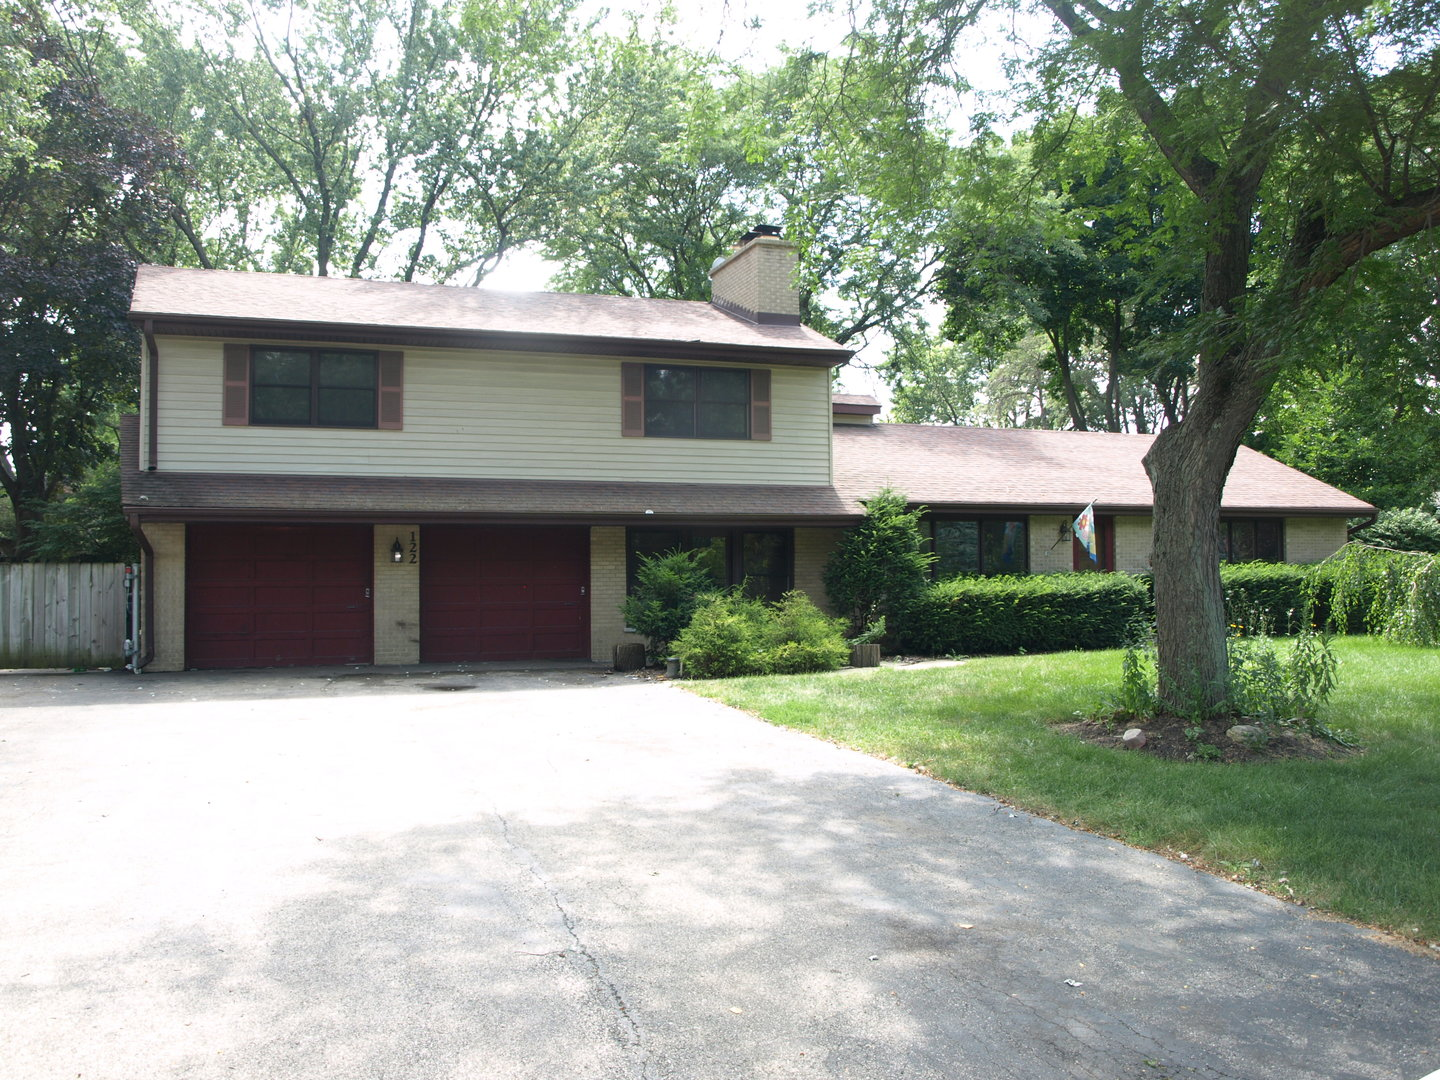 122 Howe Terrace, Barrington in Cook County, IL 60010 Home for Sale